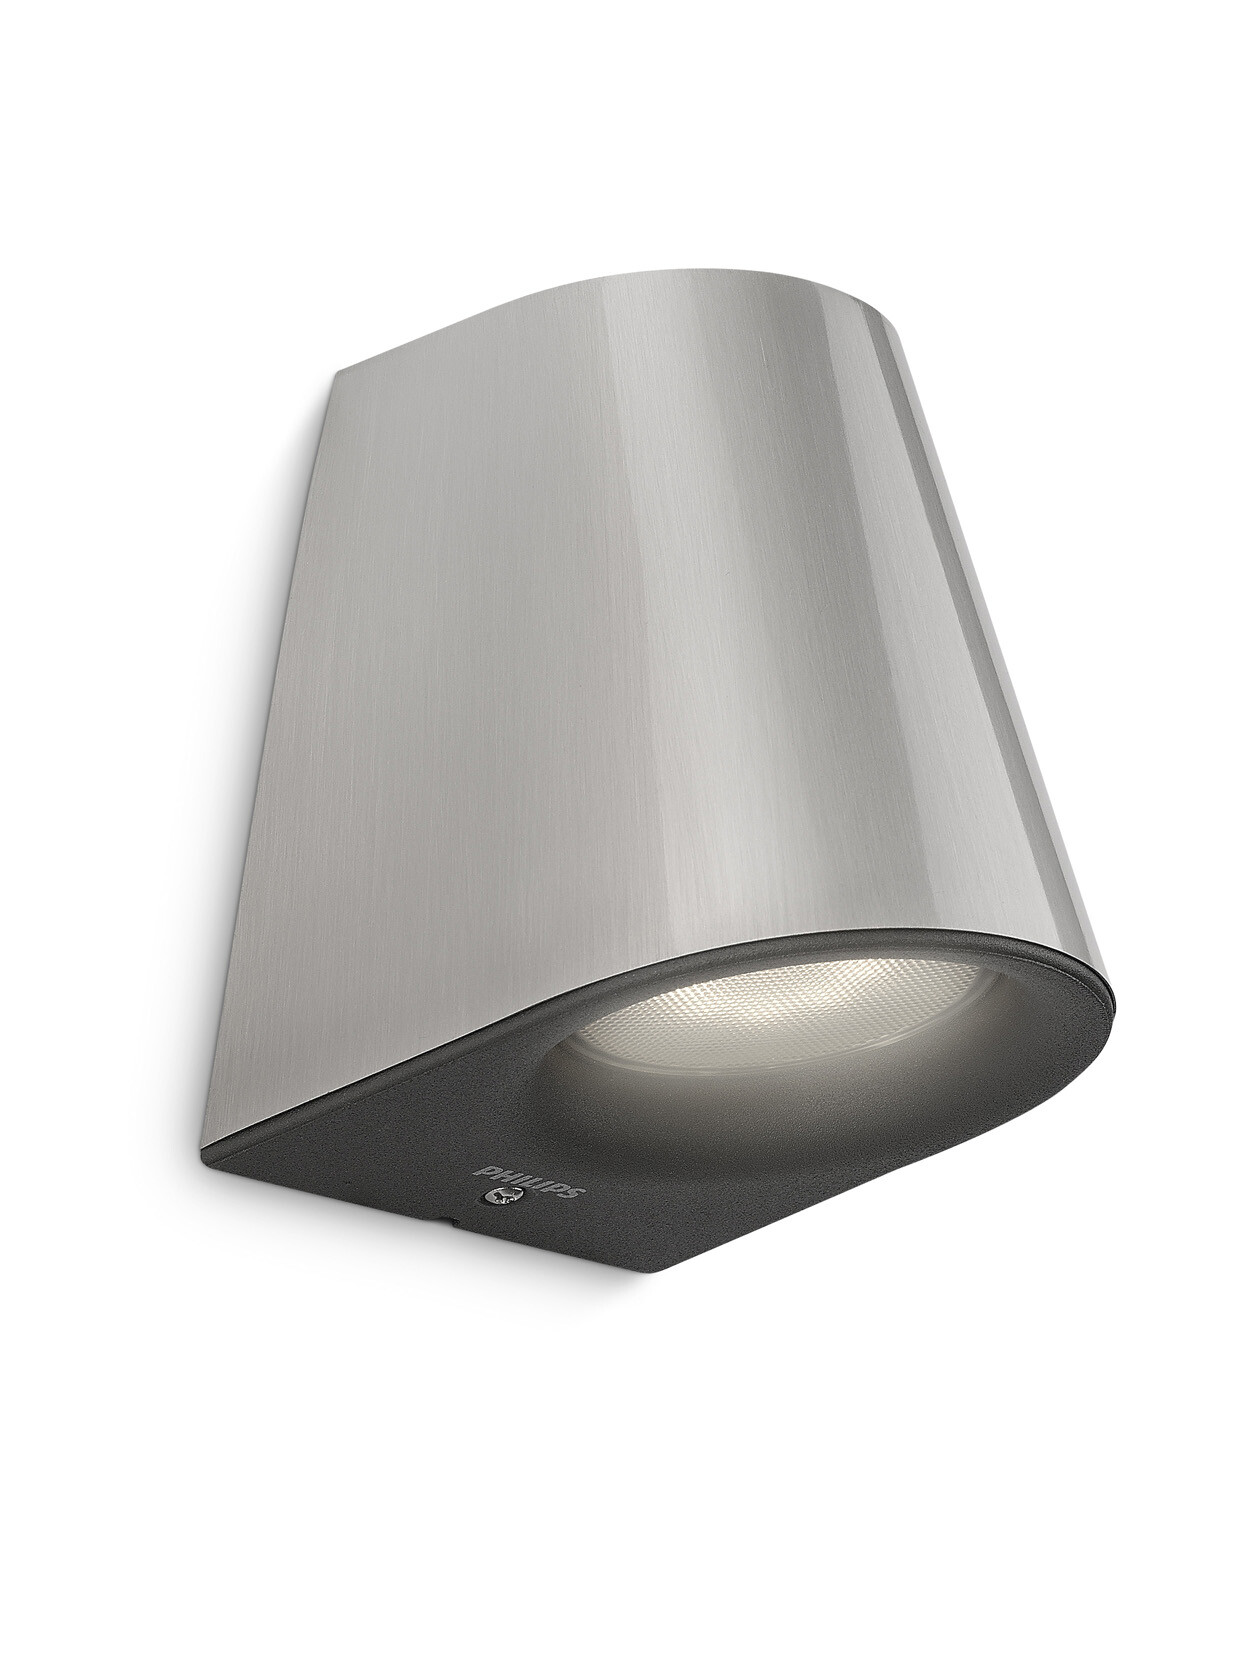 Philips VIRGA Applique LED 1x3W/270lm Gris